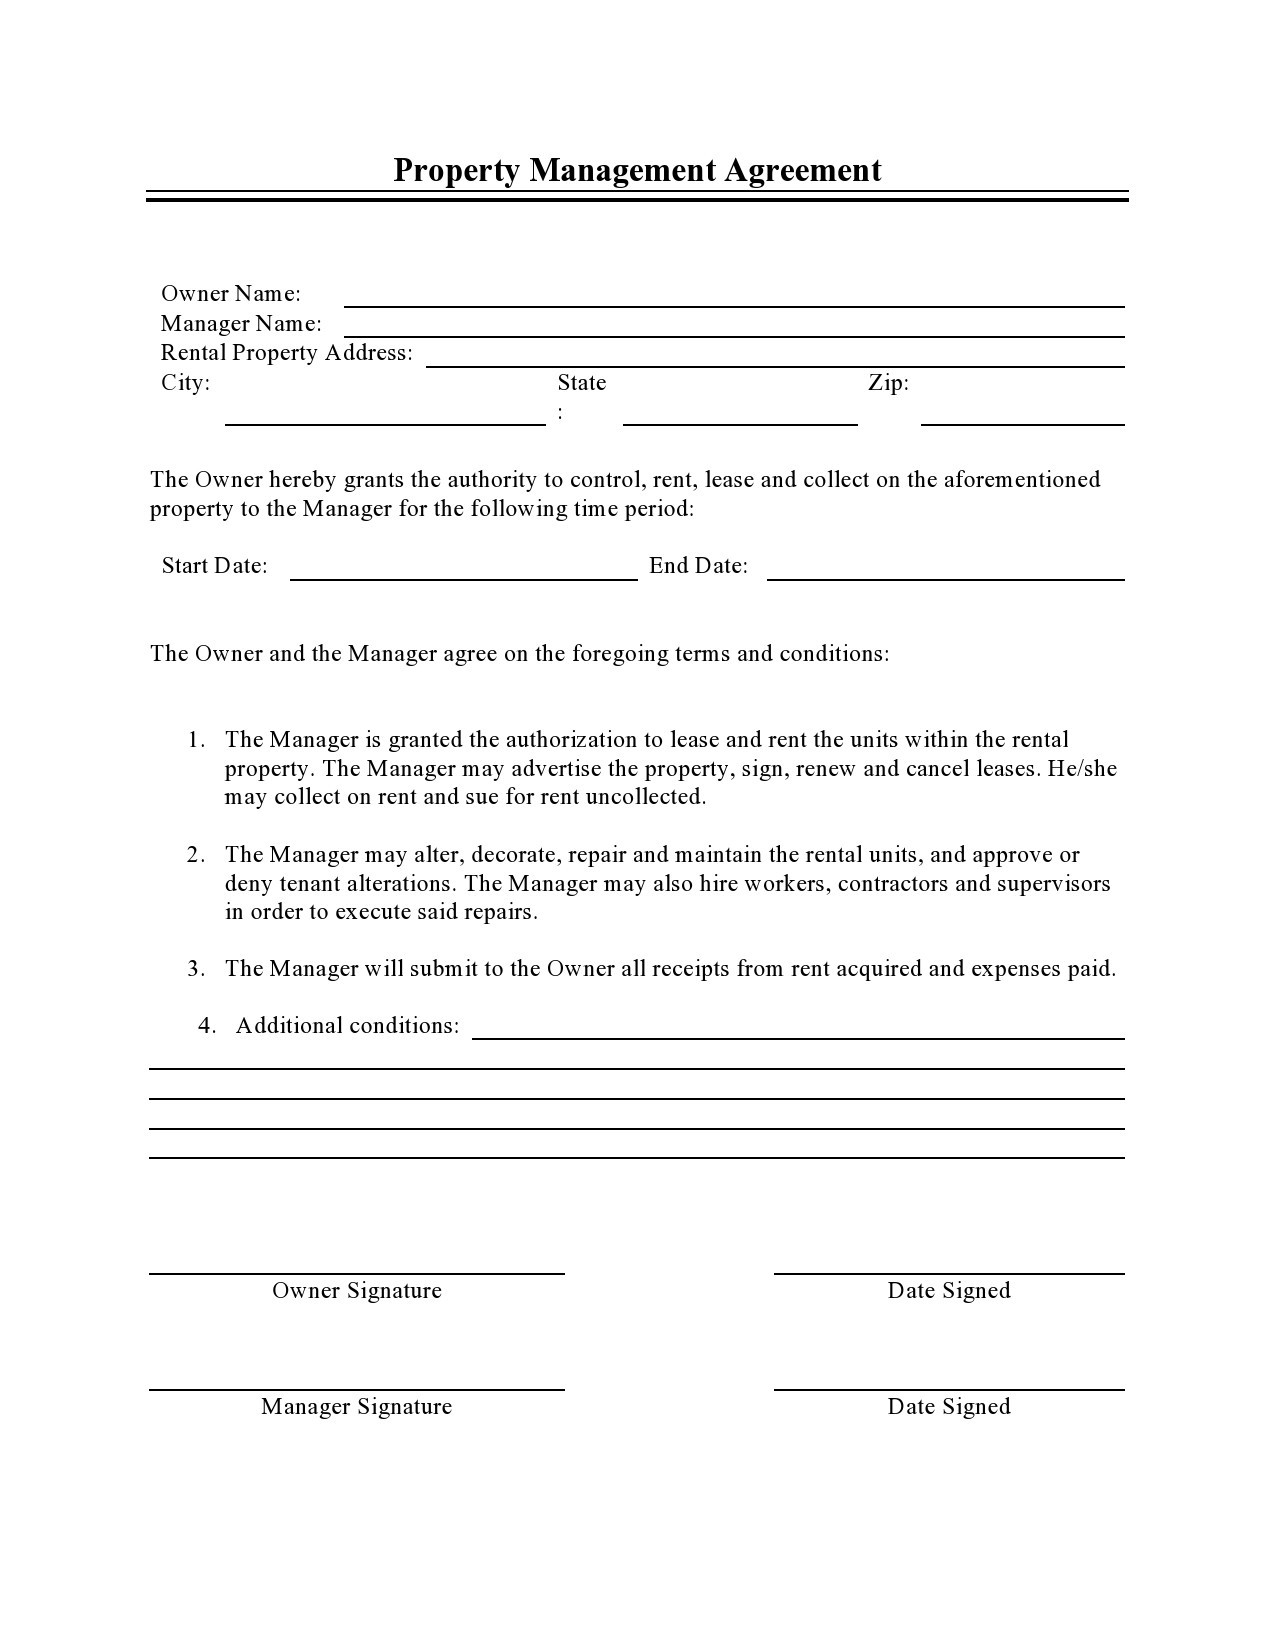 Free property management agreement 27